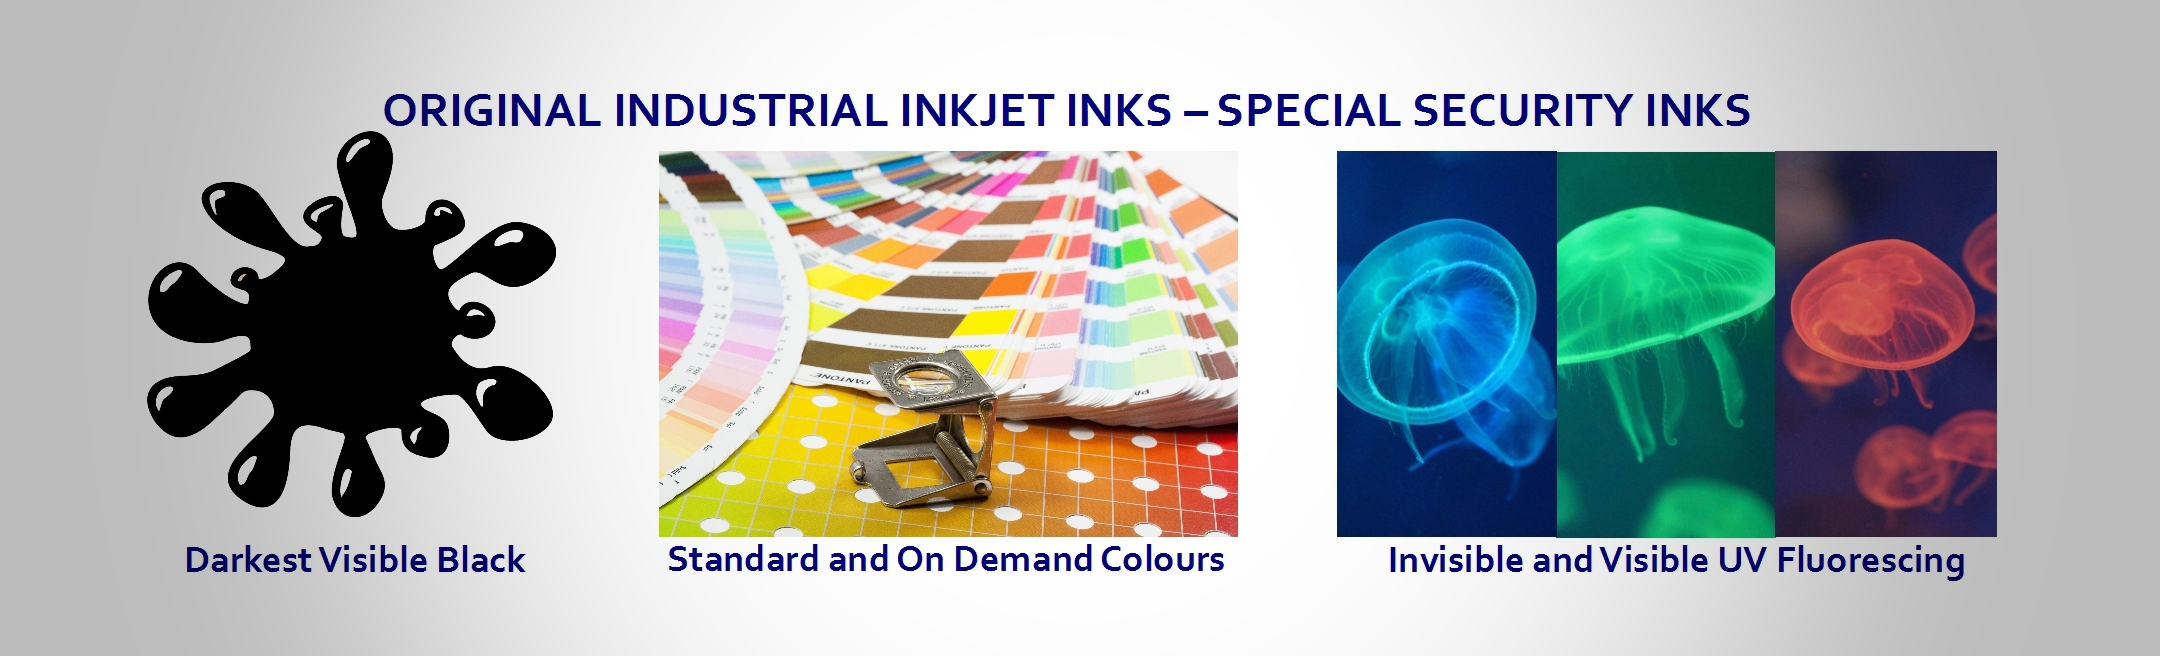 Security Industrial fluorescent invisible MICR Inks